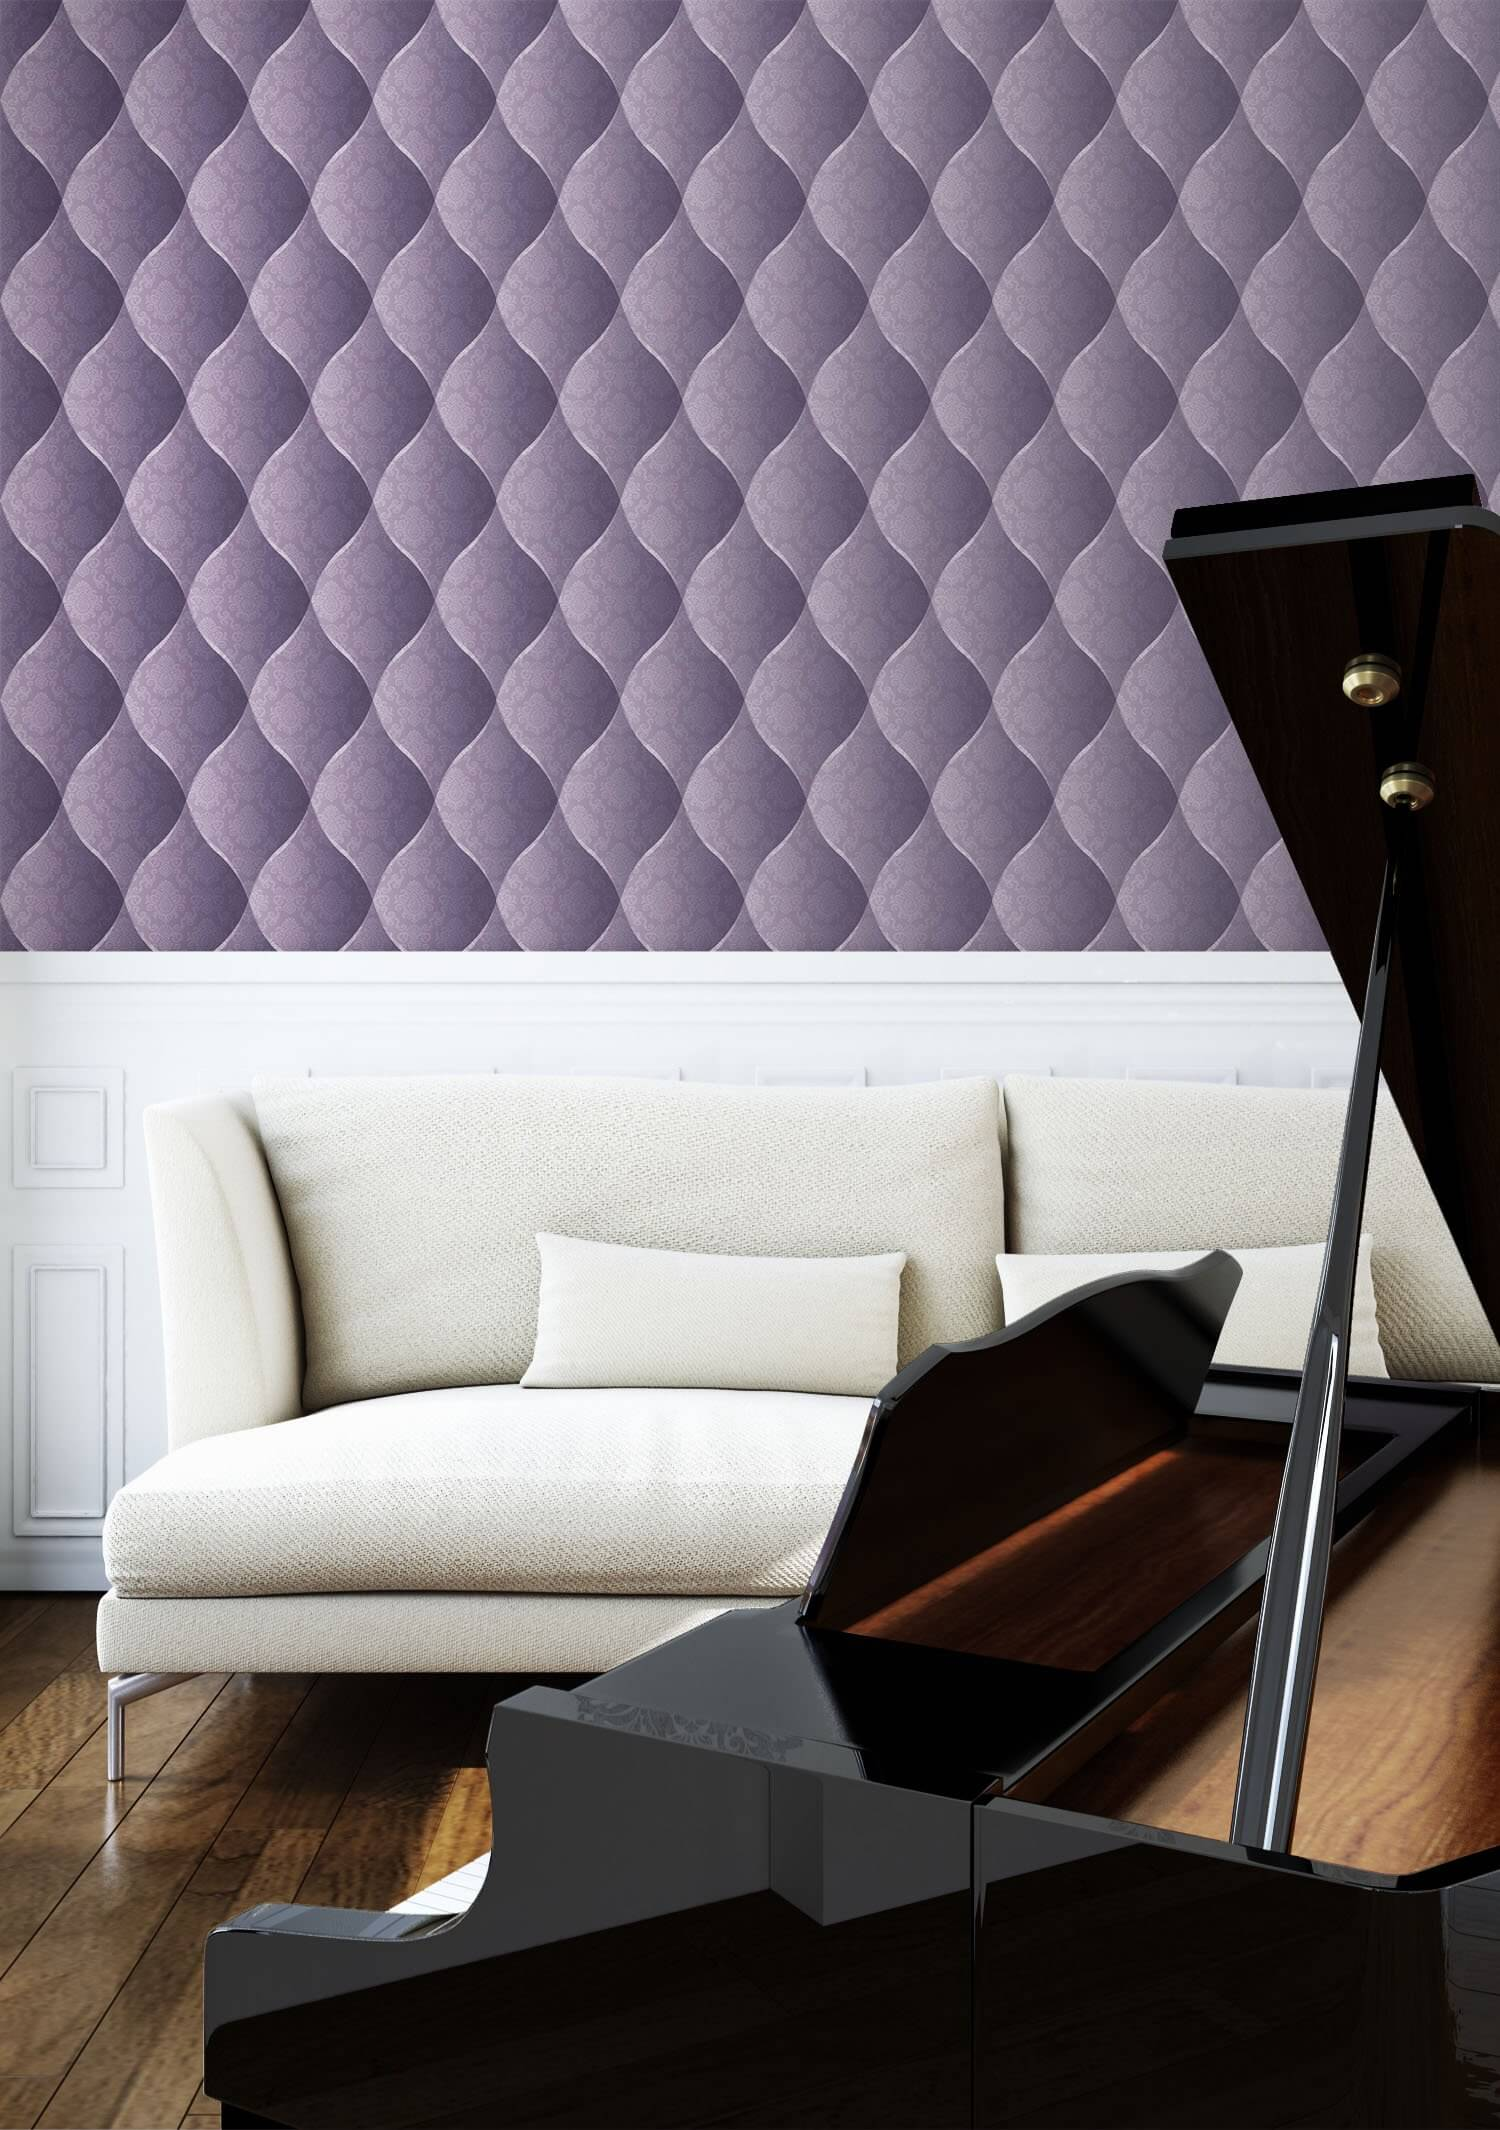 Full Size of Chesterfield Sofa Samt Lila Lilah Lilac Cushions Bed Covers Raymour And Flanigan Chair Husse 3 Sitzer Big Mit Hocker Weiß Garnitur Muuto Himolla Englisches Sofa Sofa Lila